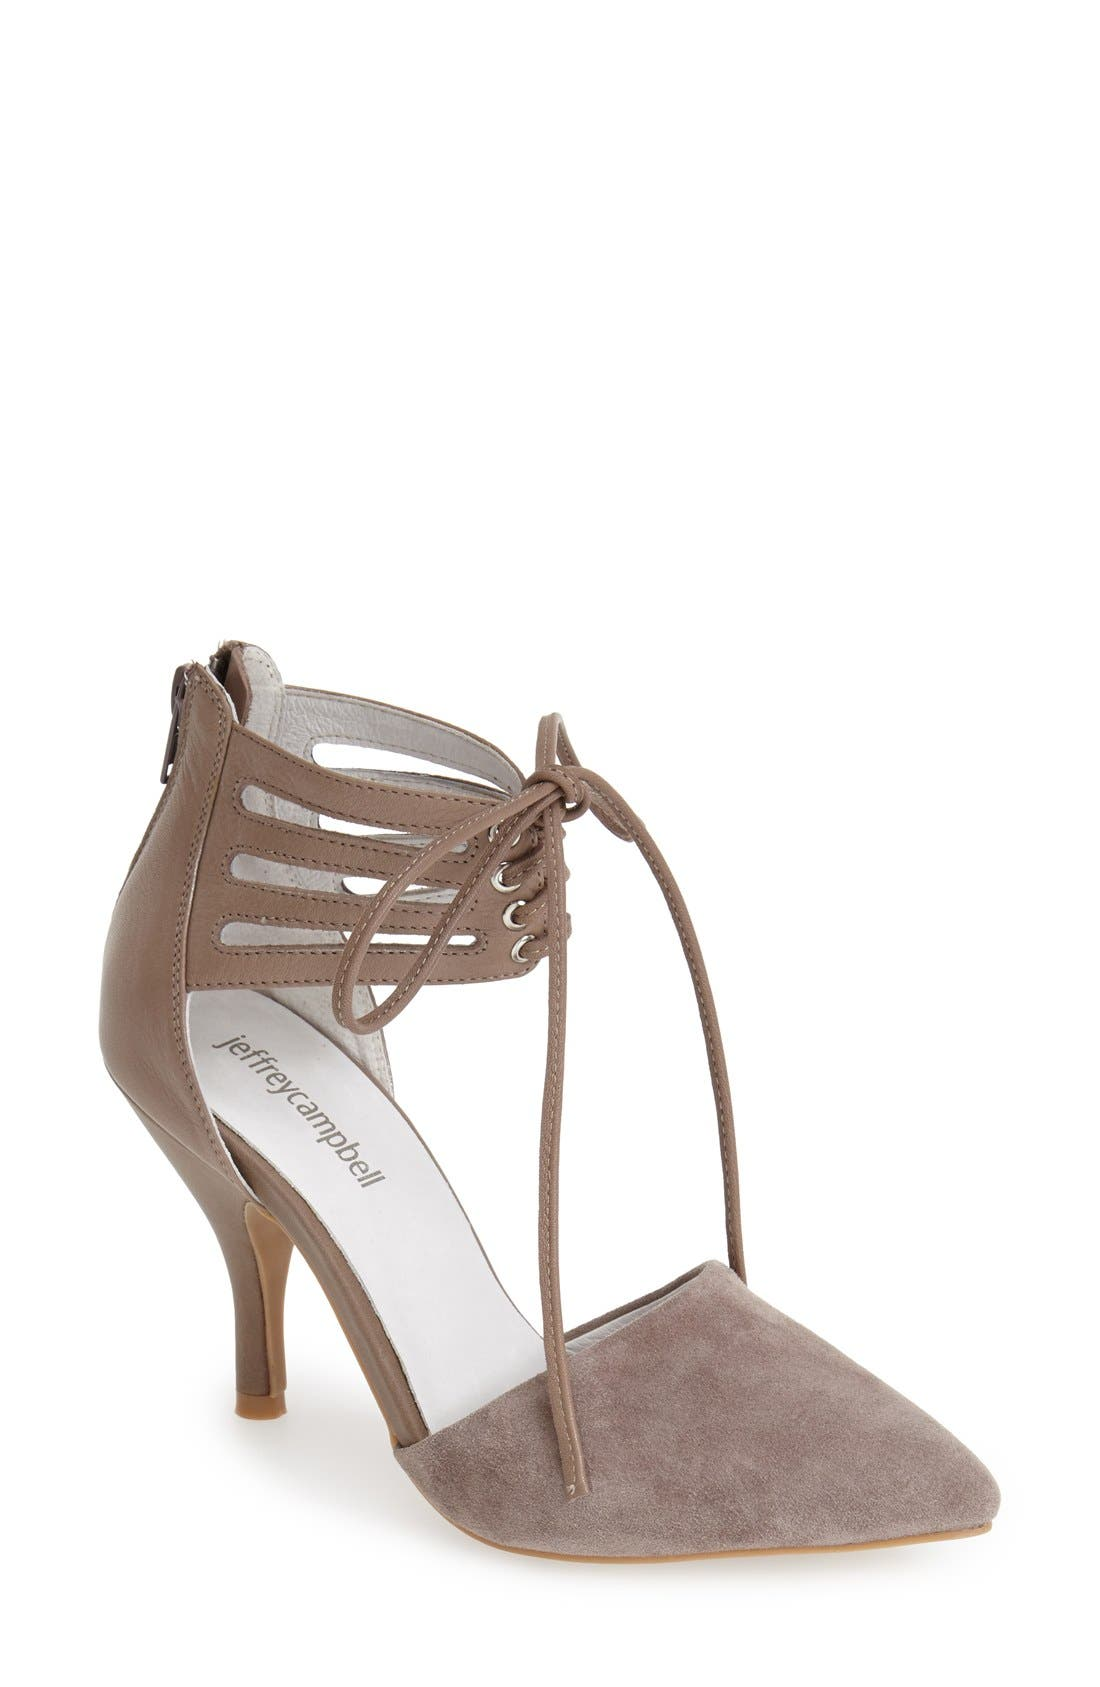 Main Image - Jeffrey Campbell 'Picabo' Lace-Up Pump (Women)